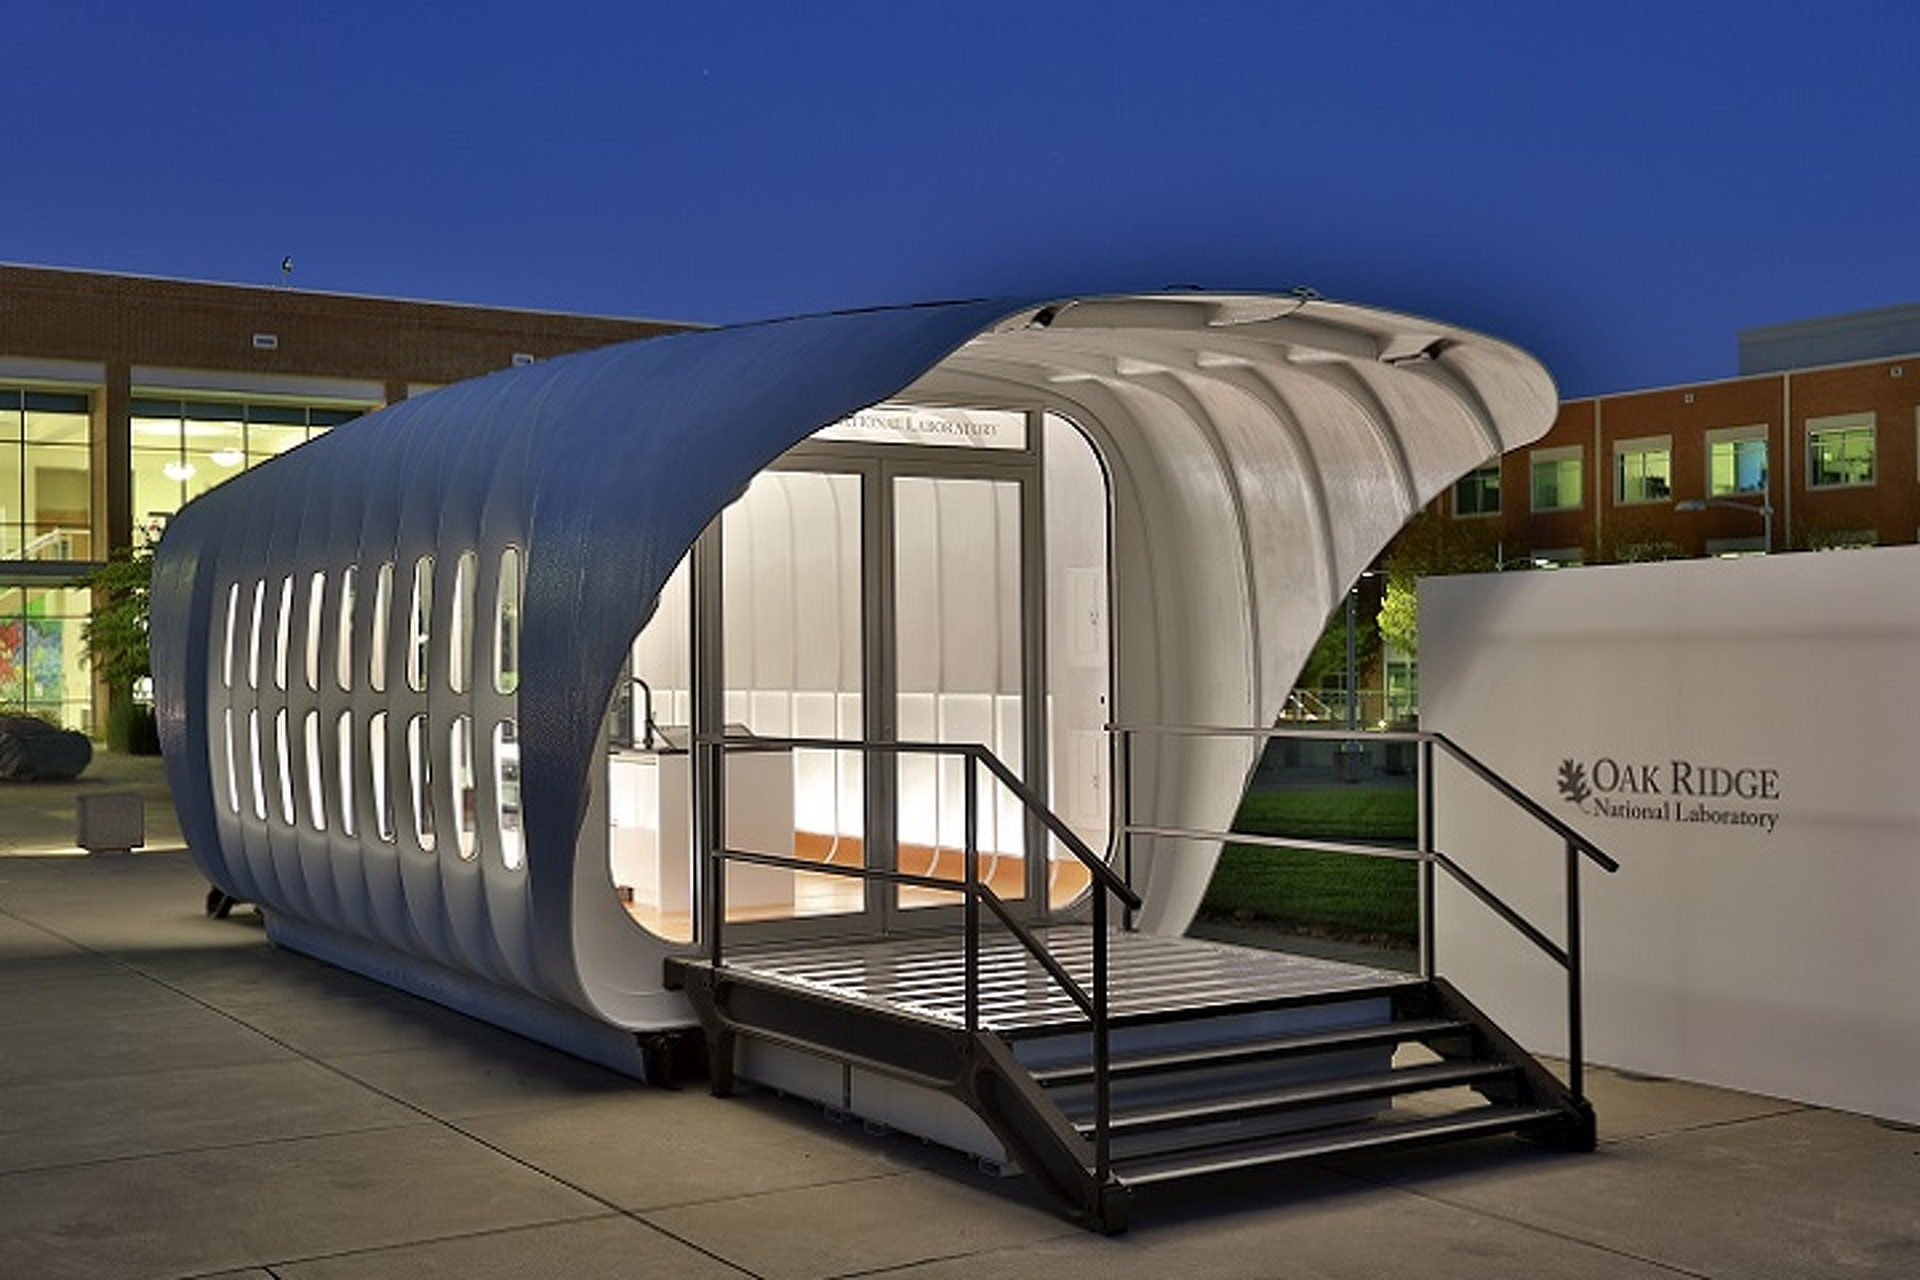 AMIE Aims To Be First 3D Printed Interconnected House and Car